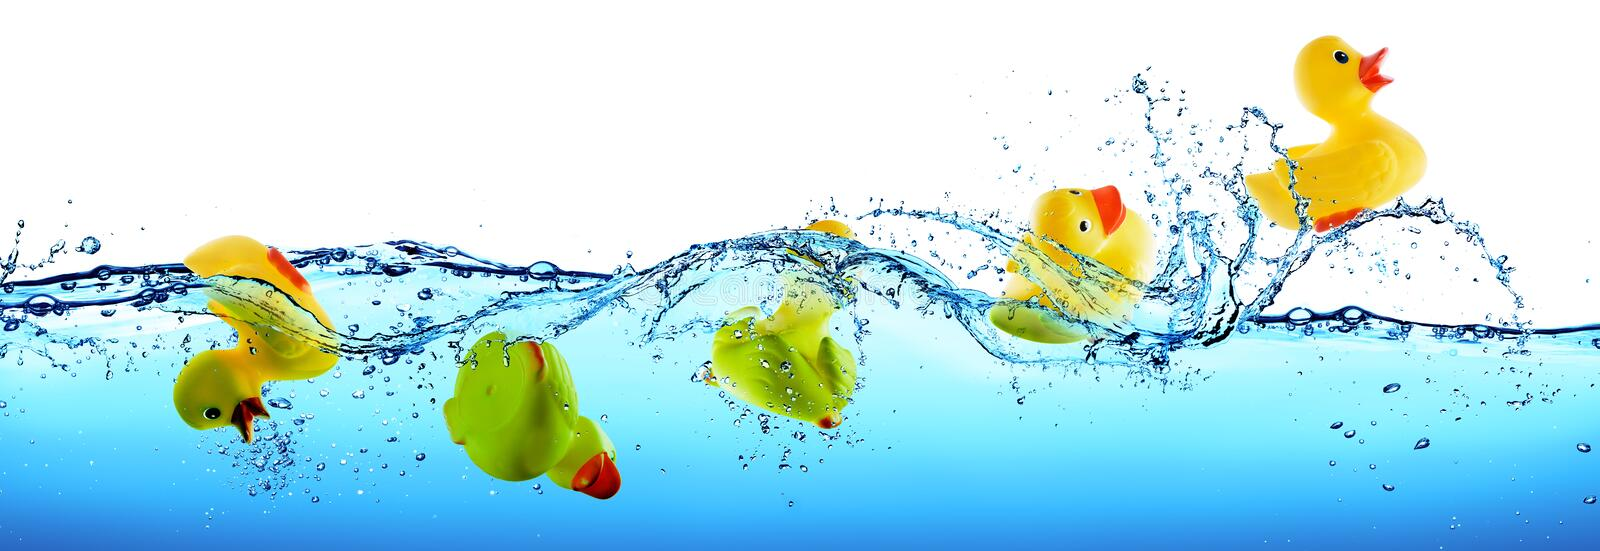 Rescue And Assistance Concept - Rubber Duck Drowning And Floating. On Water royalty free stock photo